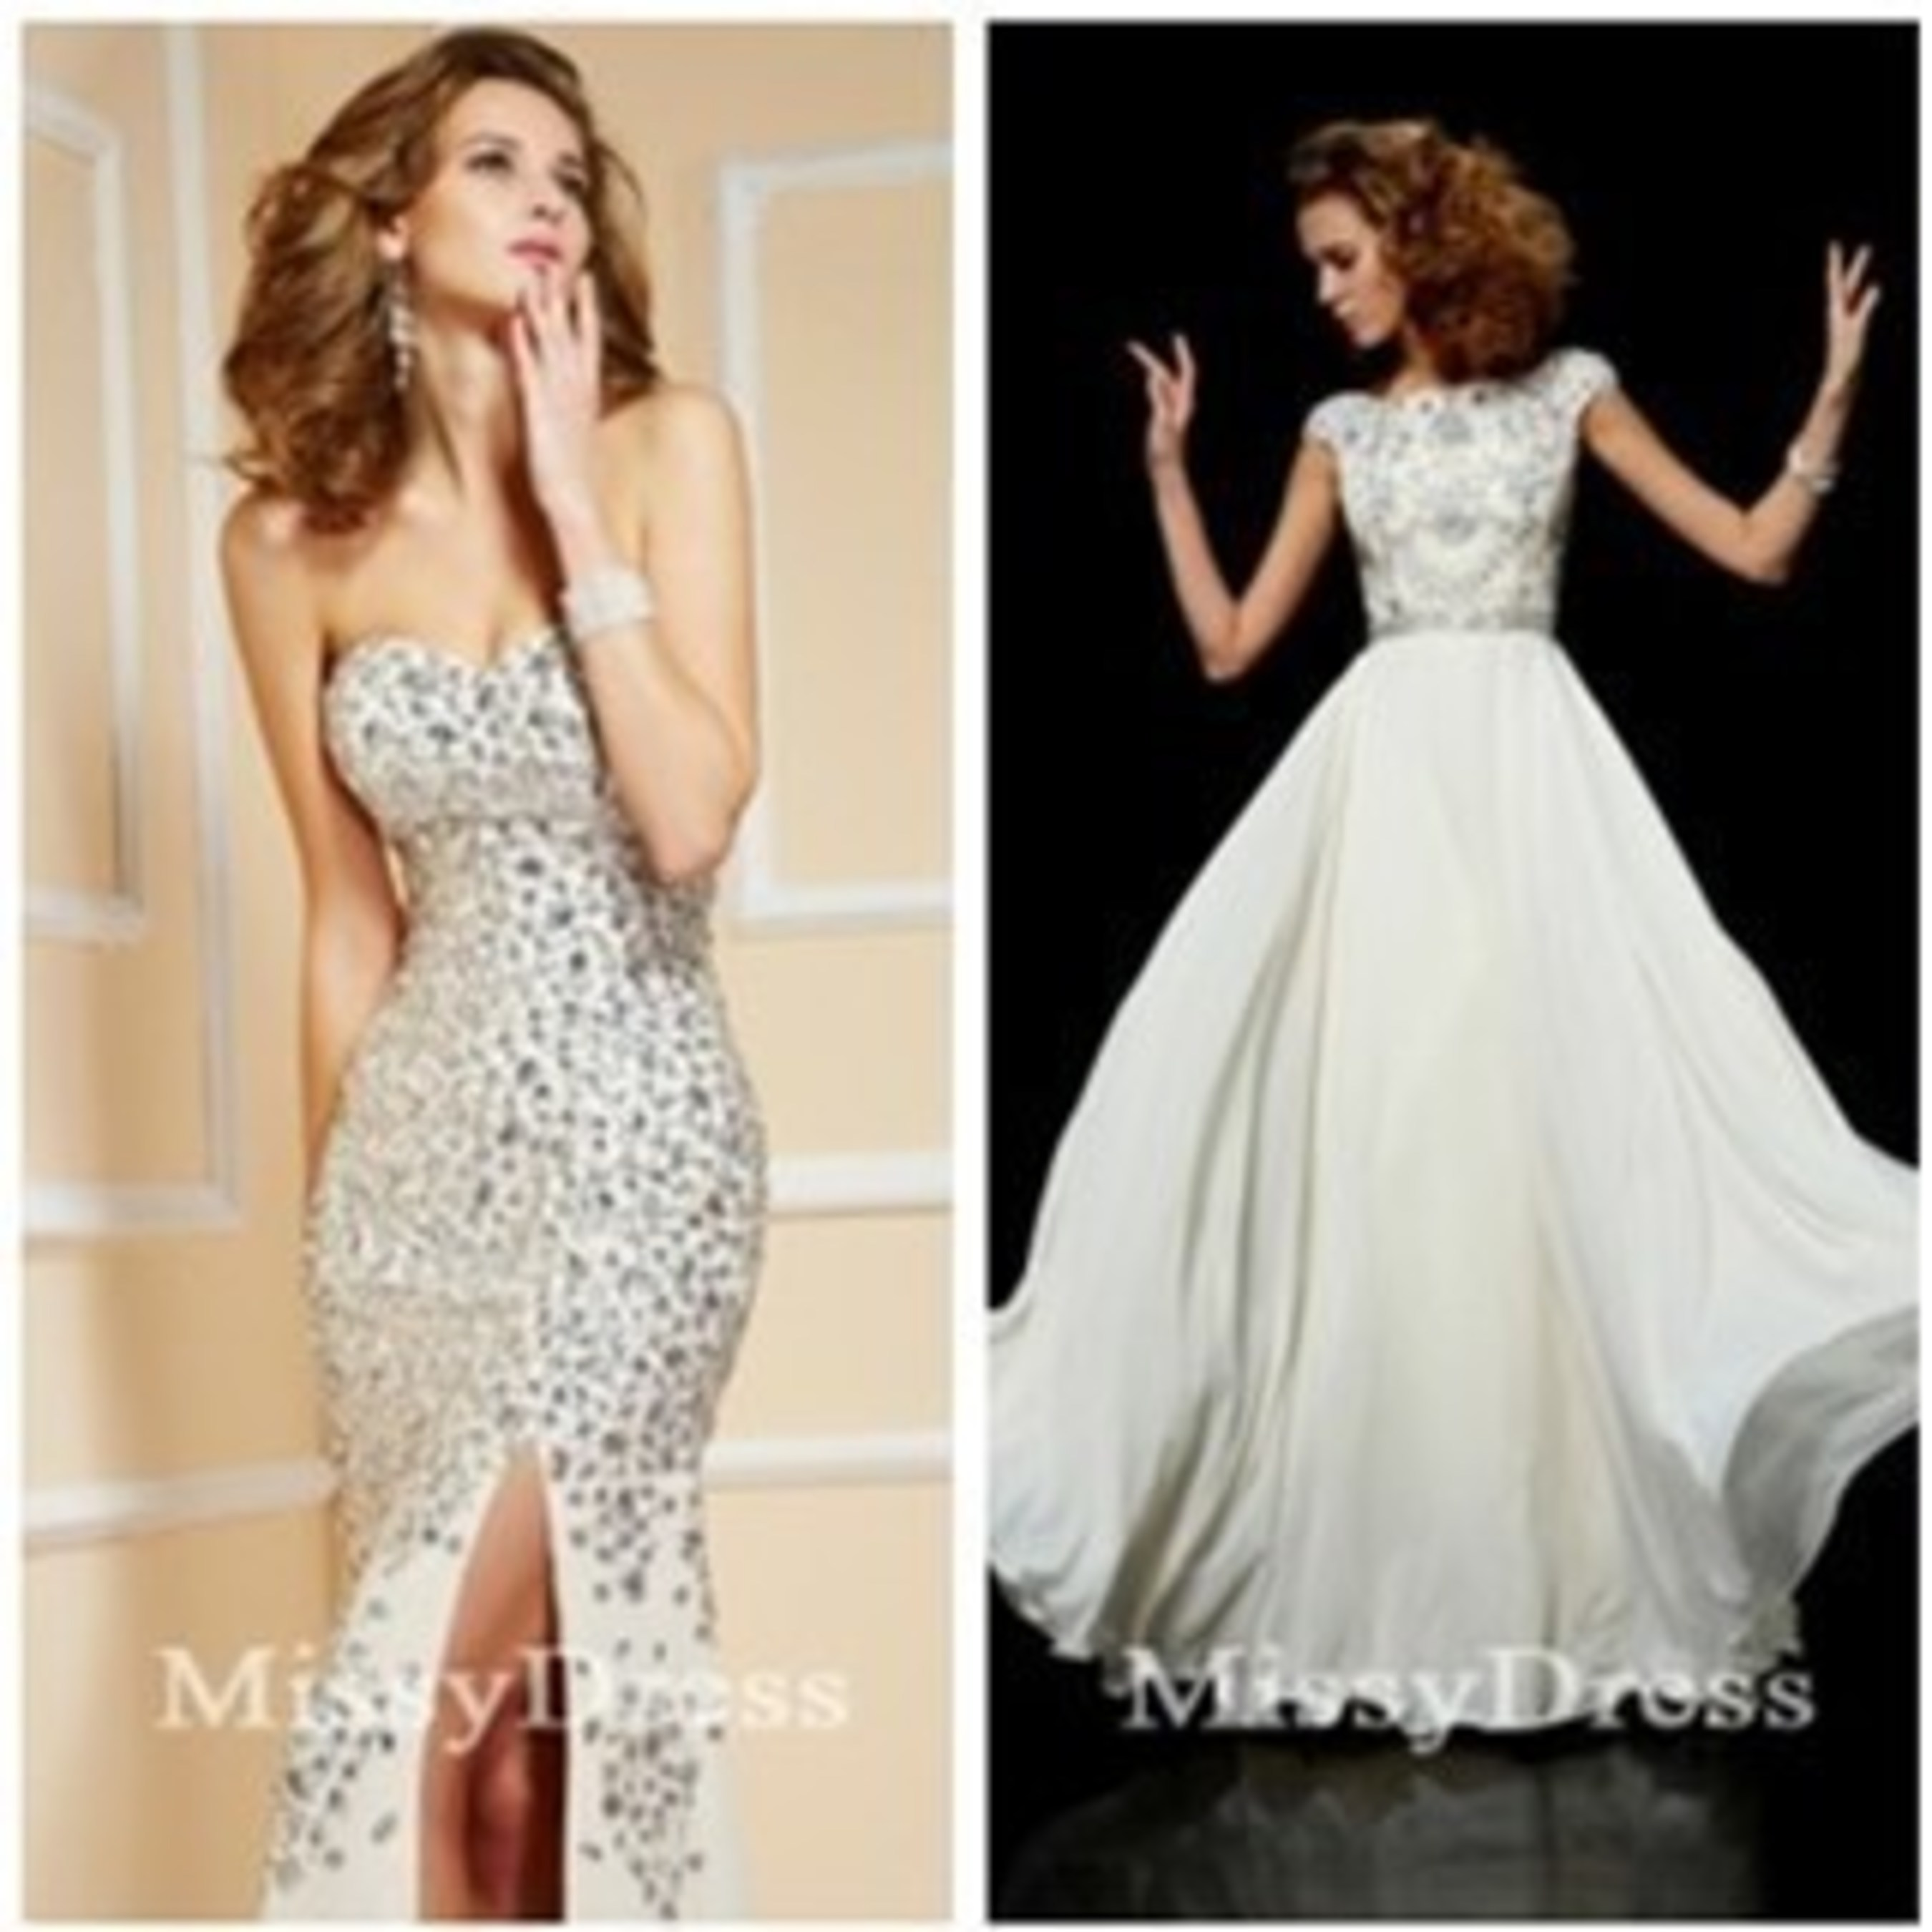 Prom Dress Shopping Tips Released by Leading UK Dress Boutique MissyDress